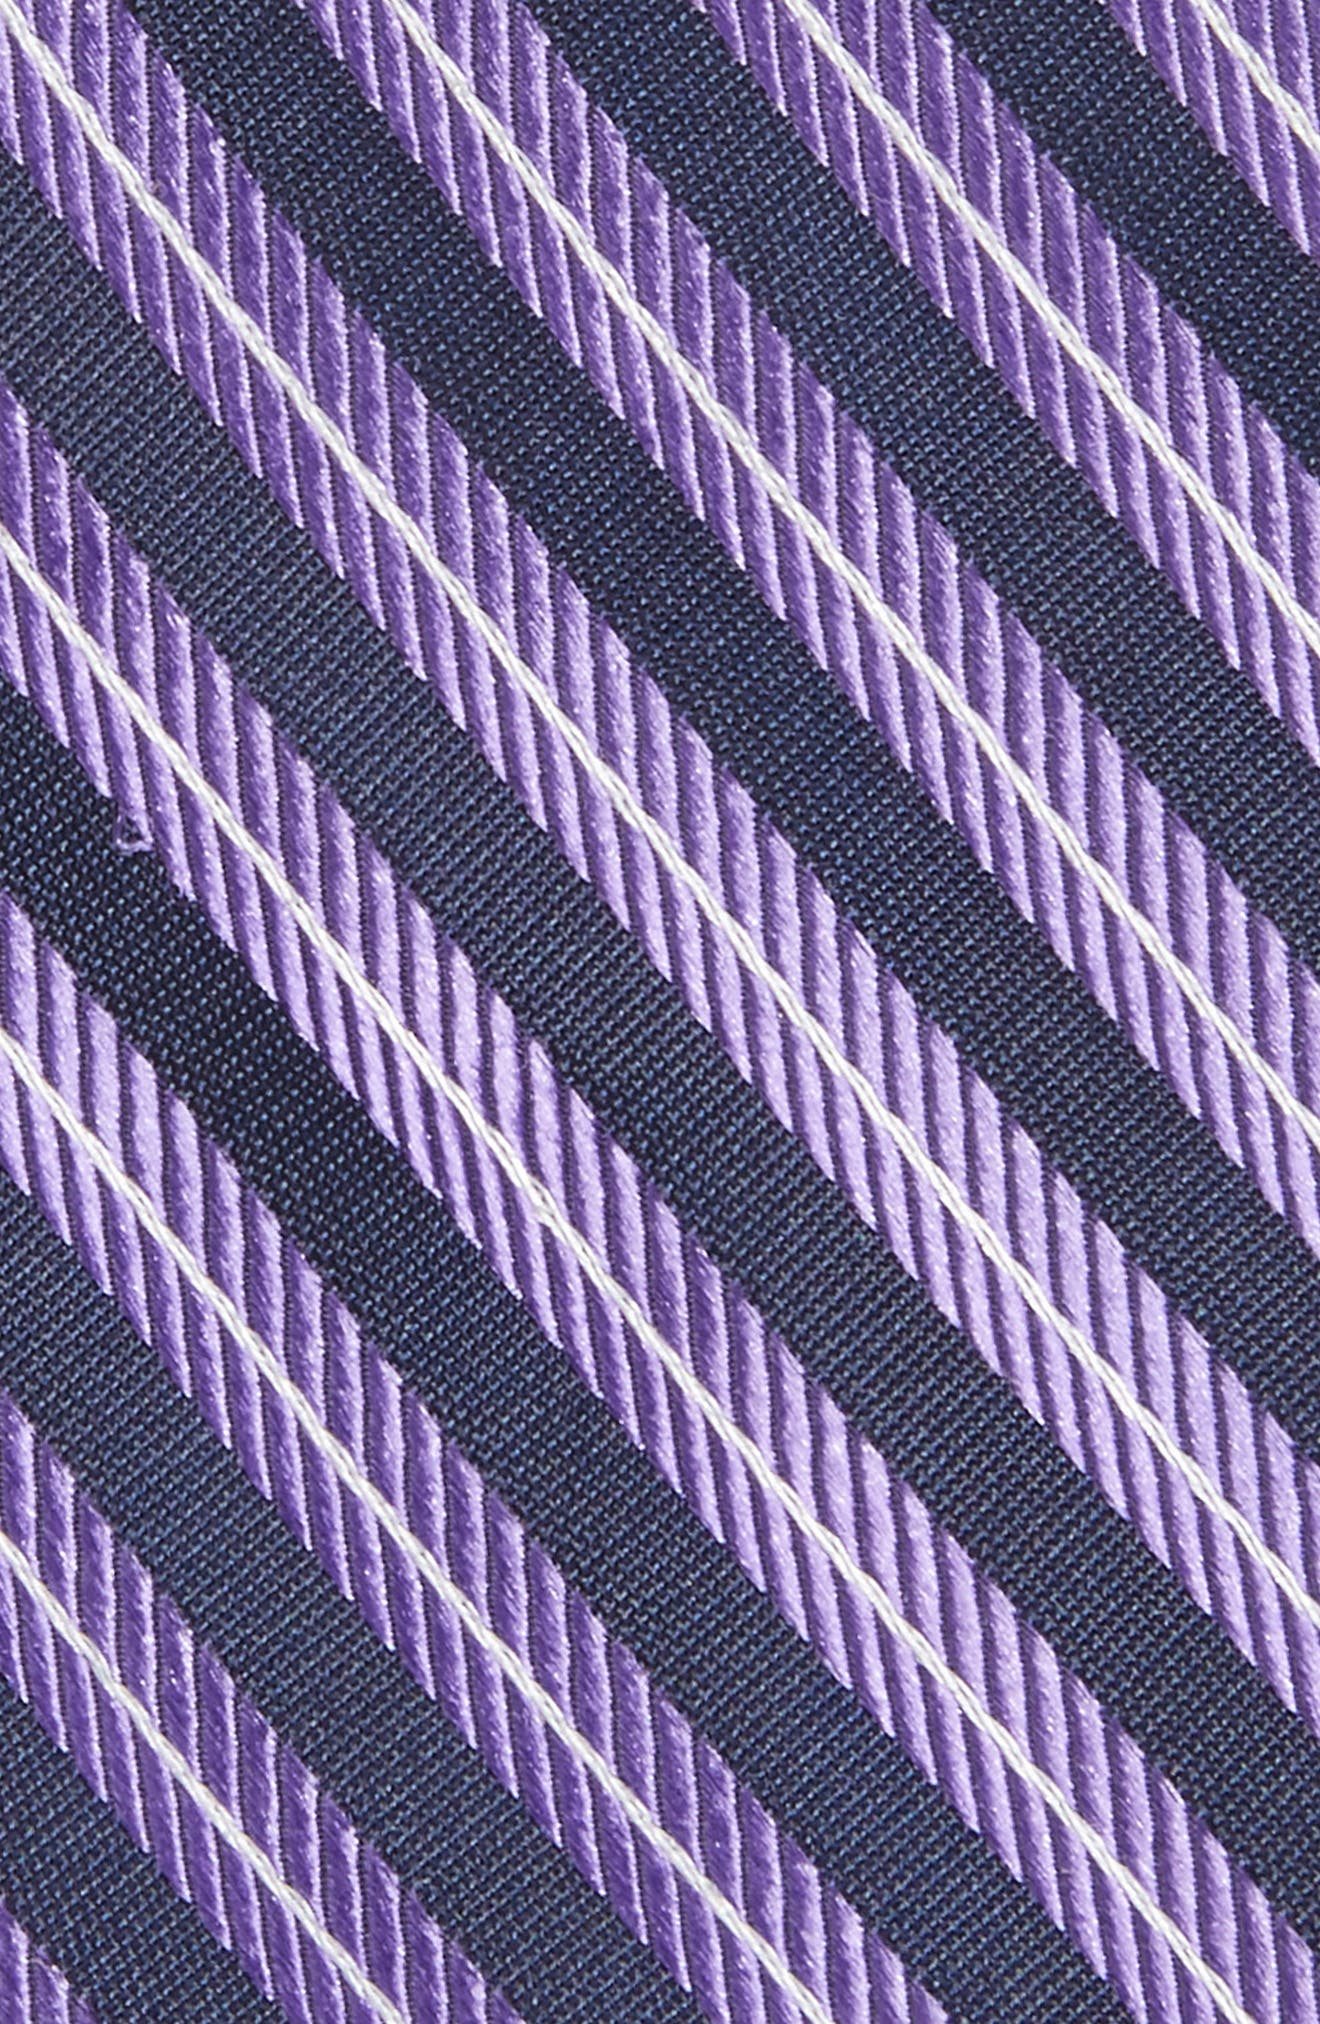 Milliner Stripe Silk Tie,                             Alternate thumbnail 2, color,                             Purple